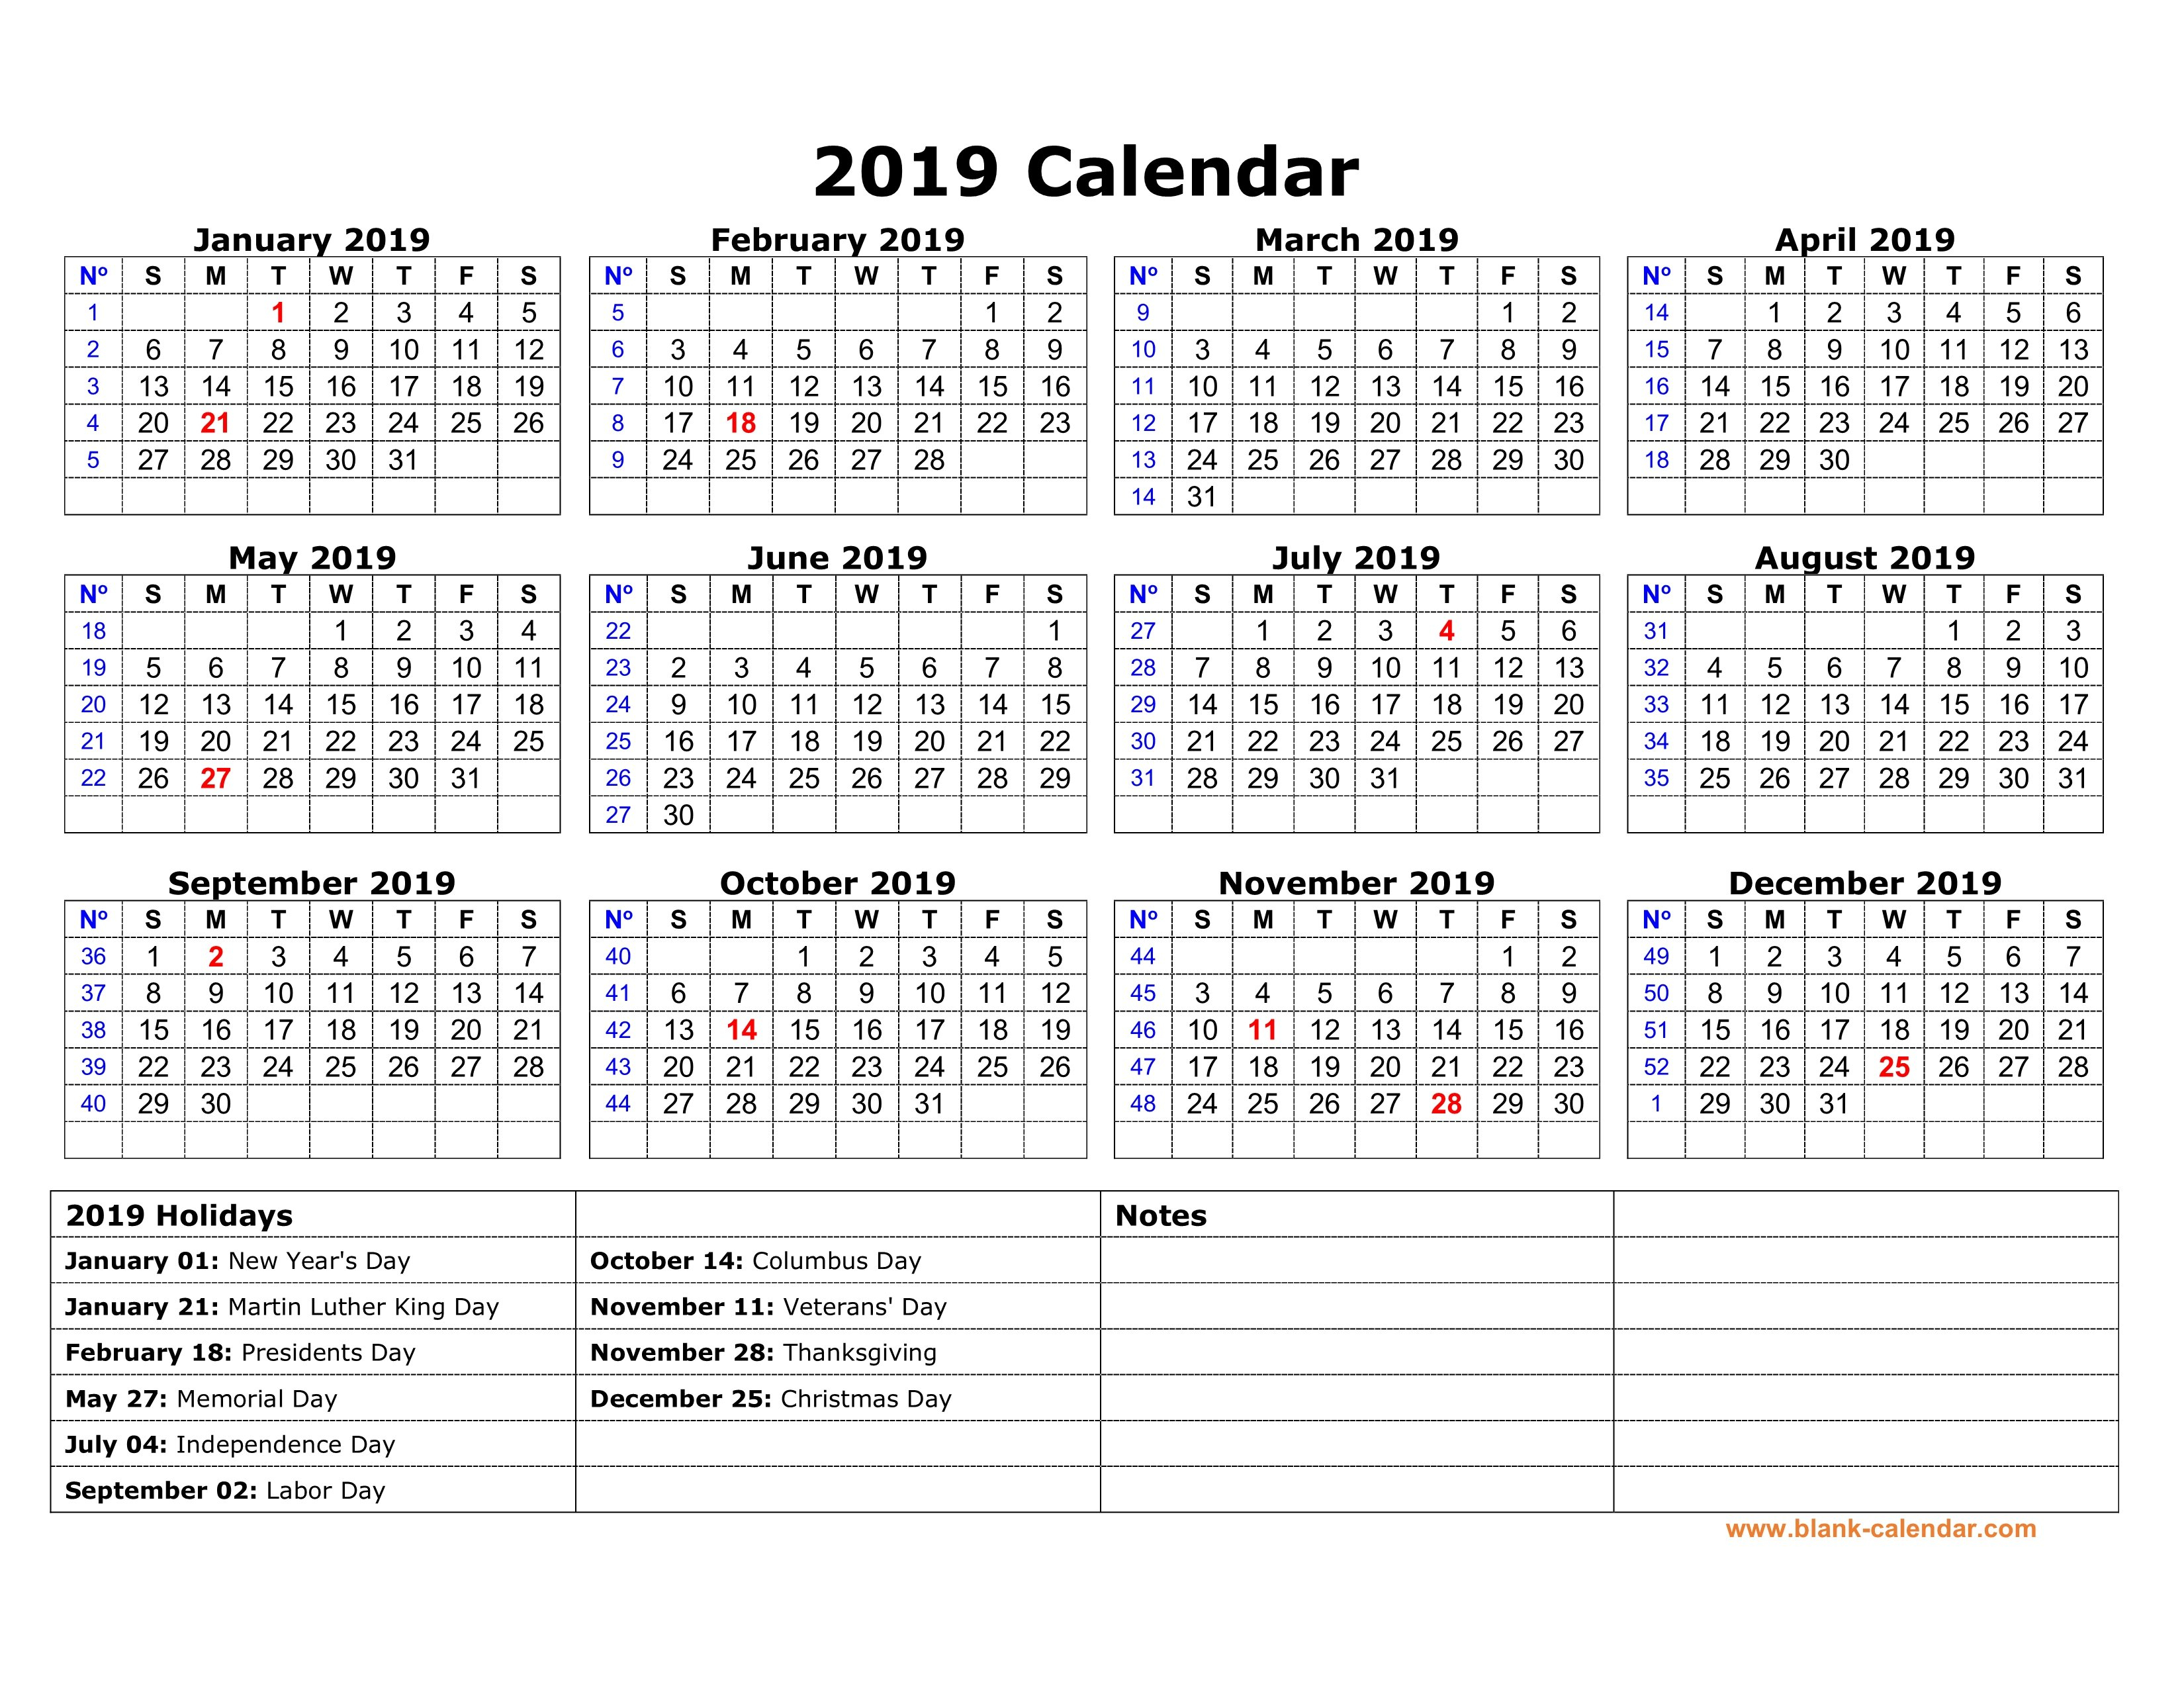 Free Download Printable Calendar 2019 With Us Federal Holidays, One Calendar 2019 With Holidays Usa Printable